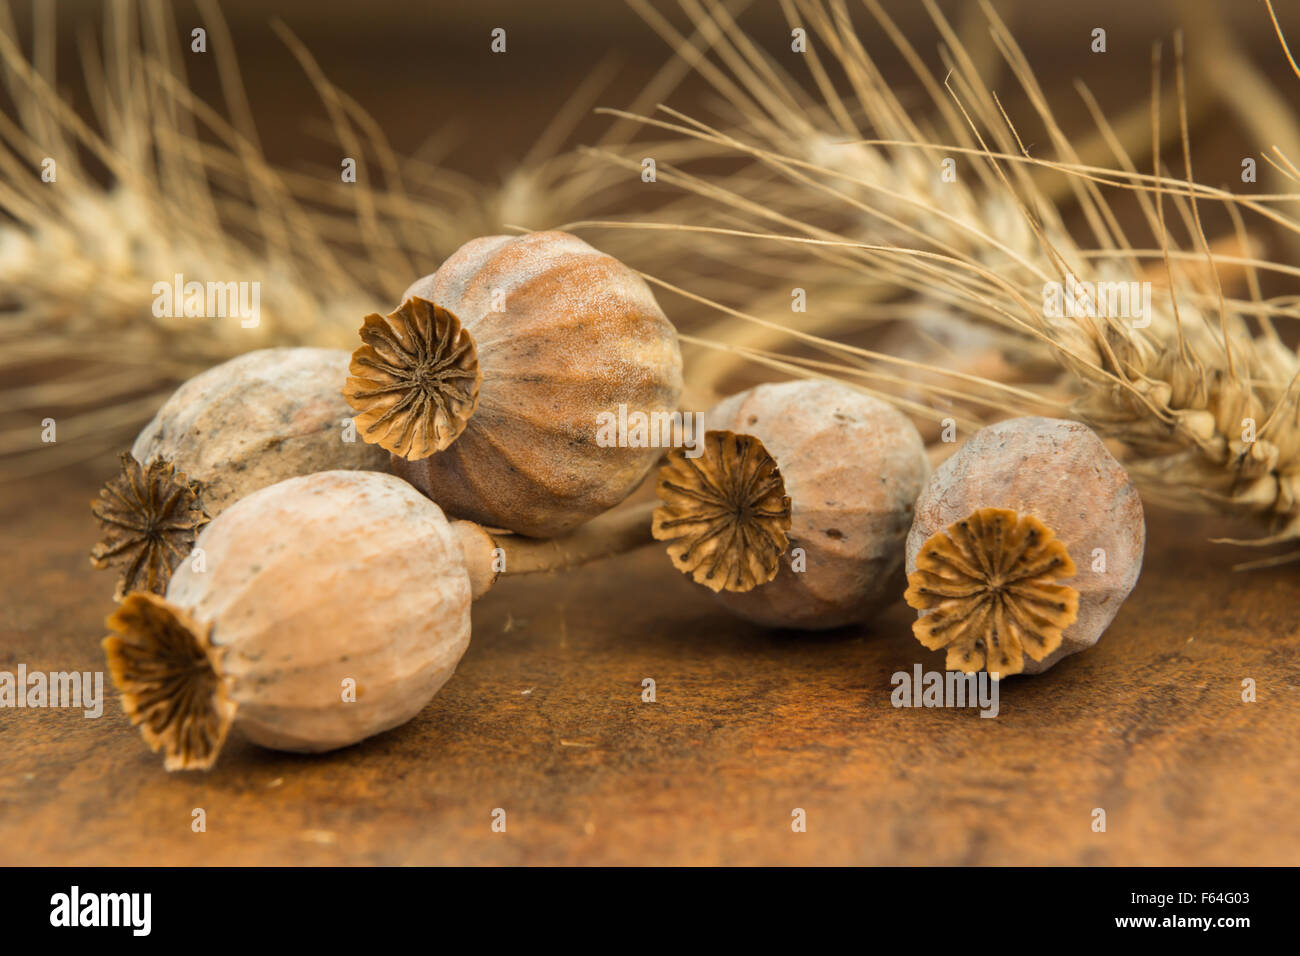 ripe dry poppy heads and wheat on an old table - Stock Image